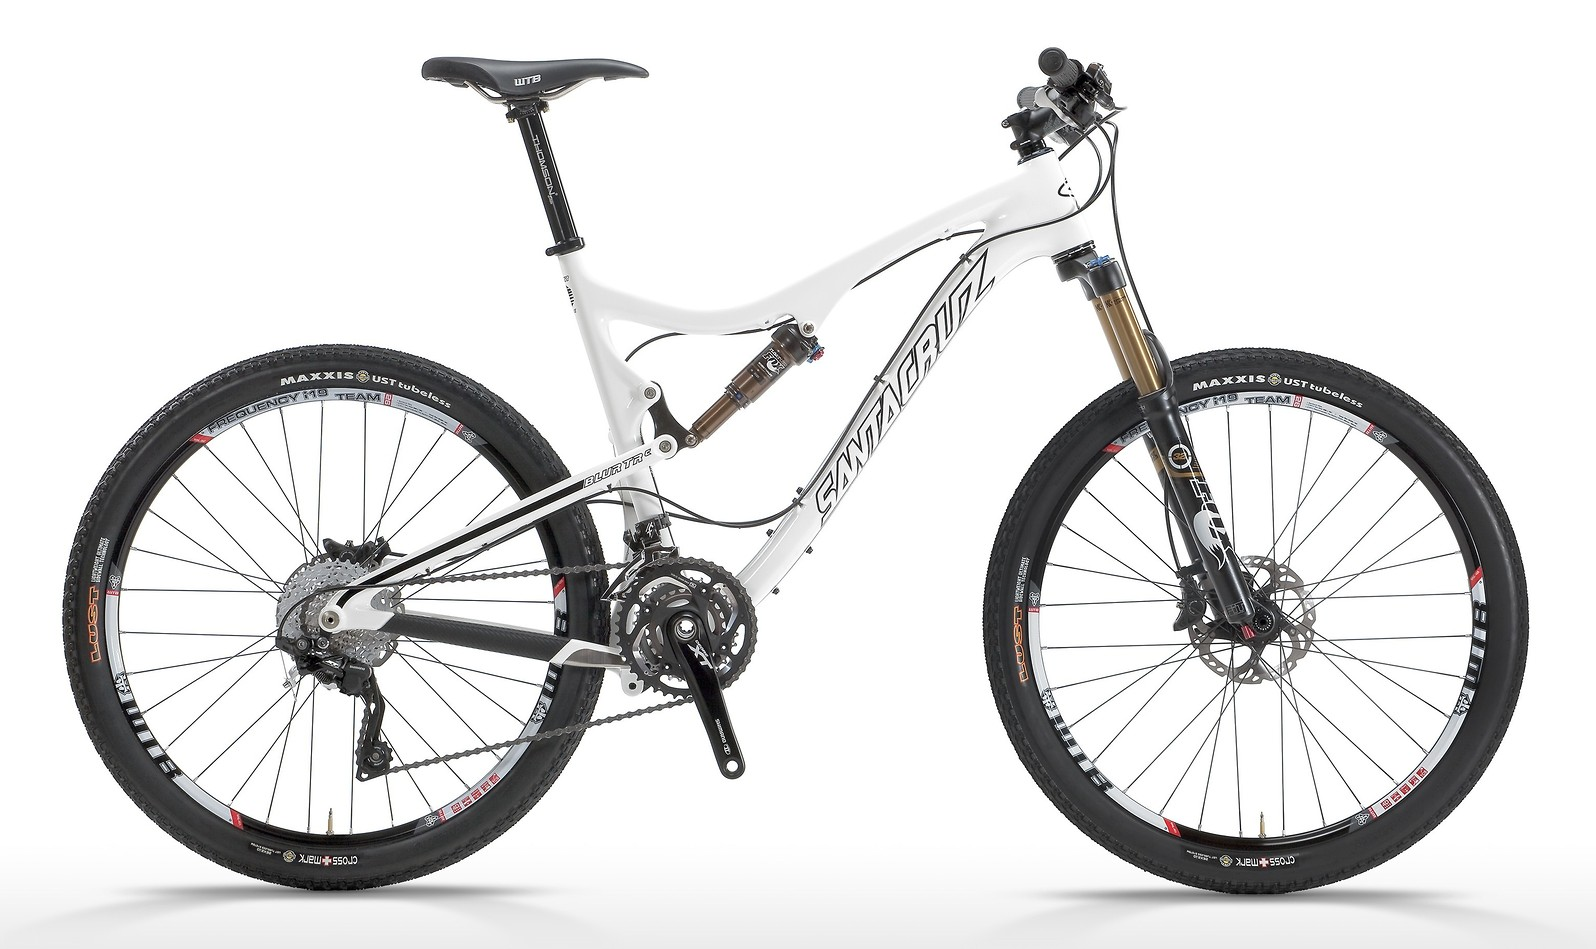 Santa Cruz Blur TR Carbon (2013) Frame - Reviews, Comparisons, Specs ...